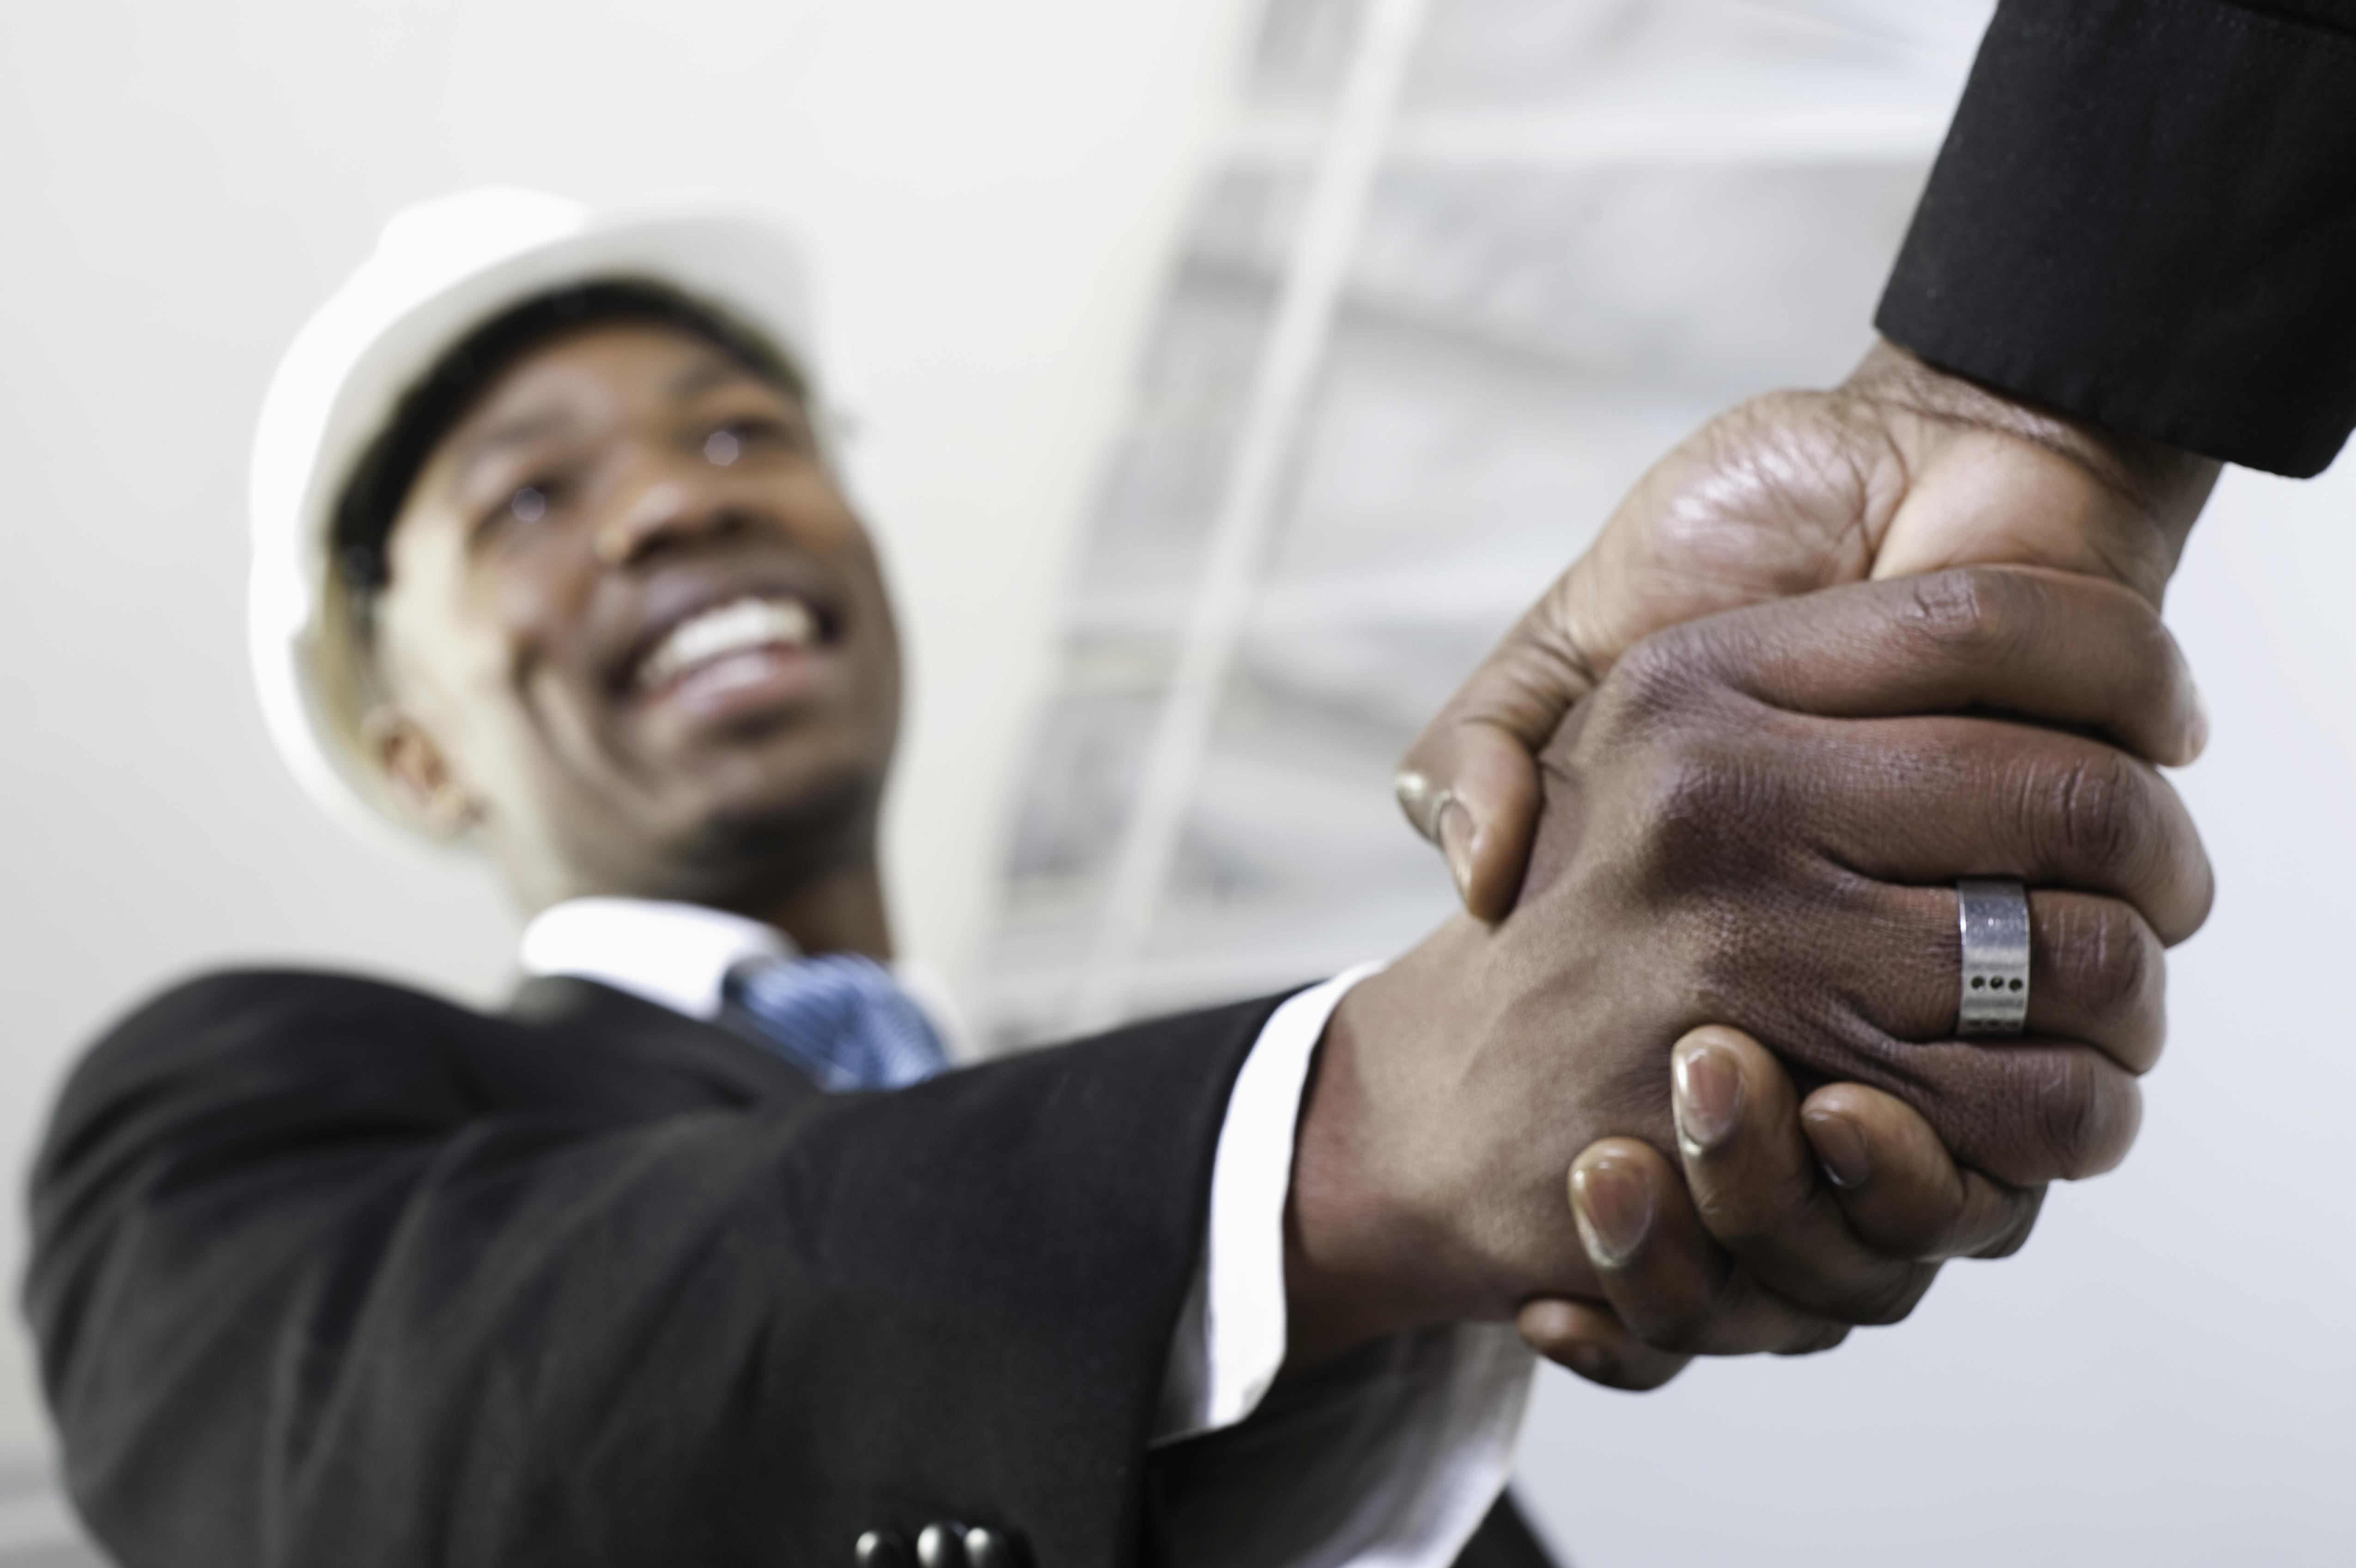 Low angle view of a building contractor shaking hands, South Africa